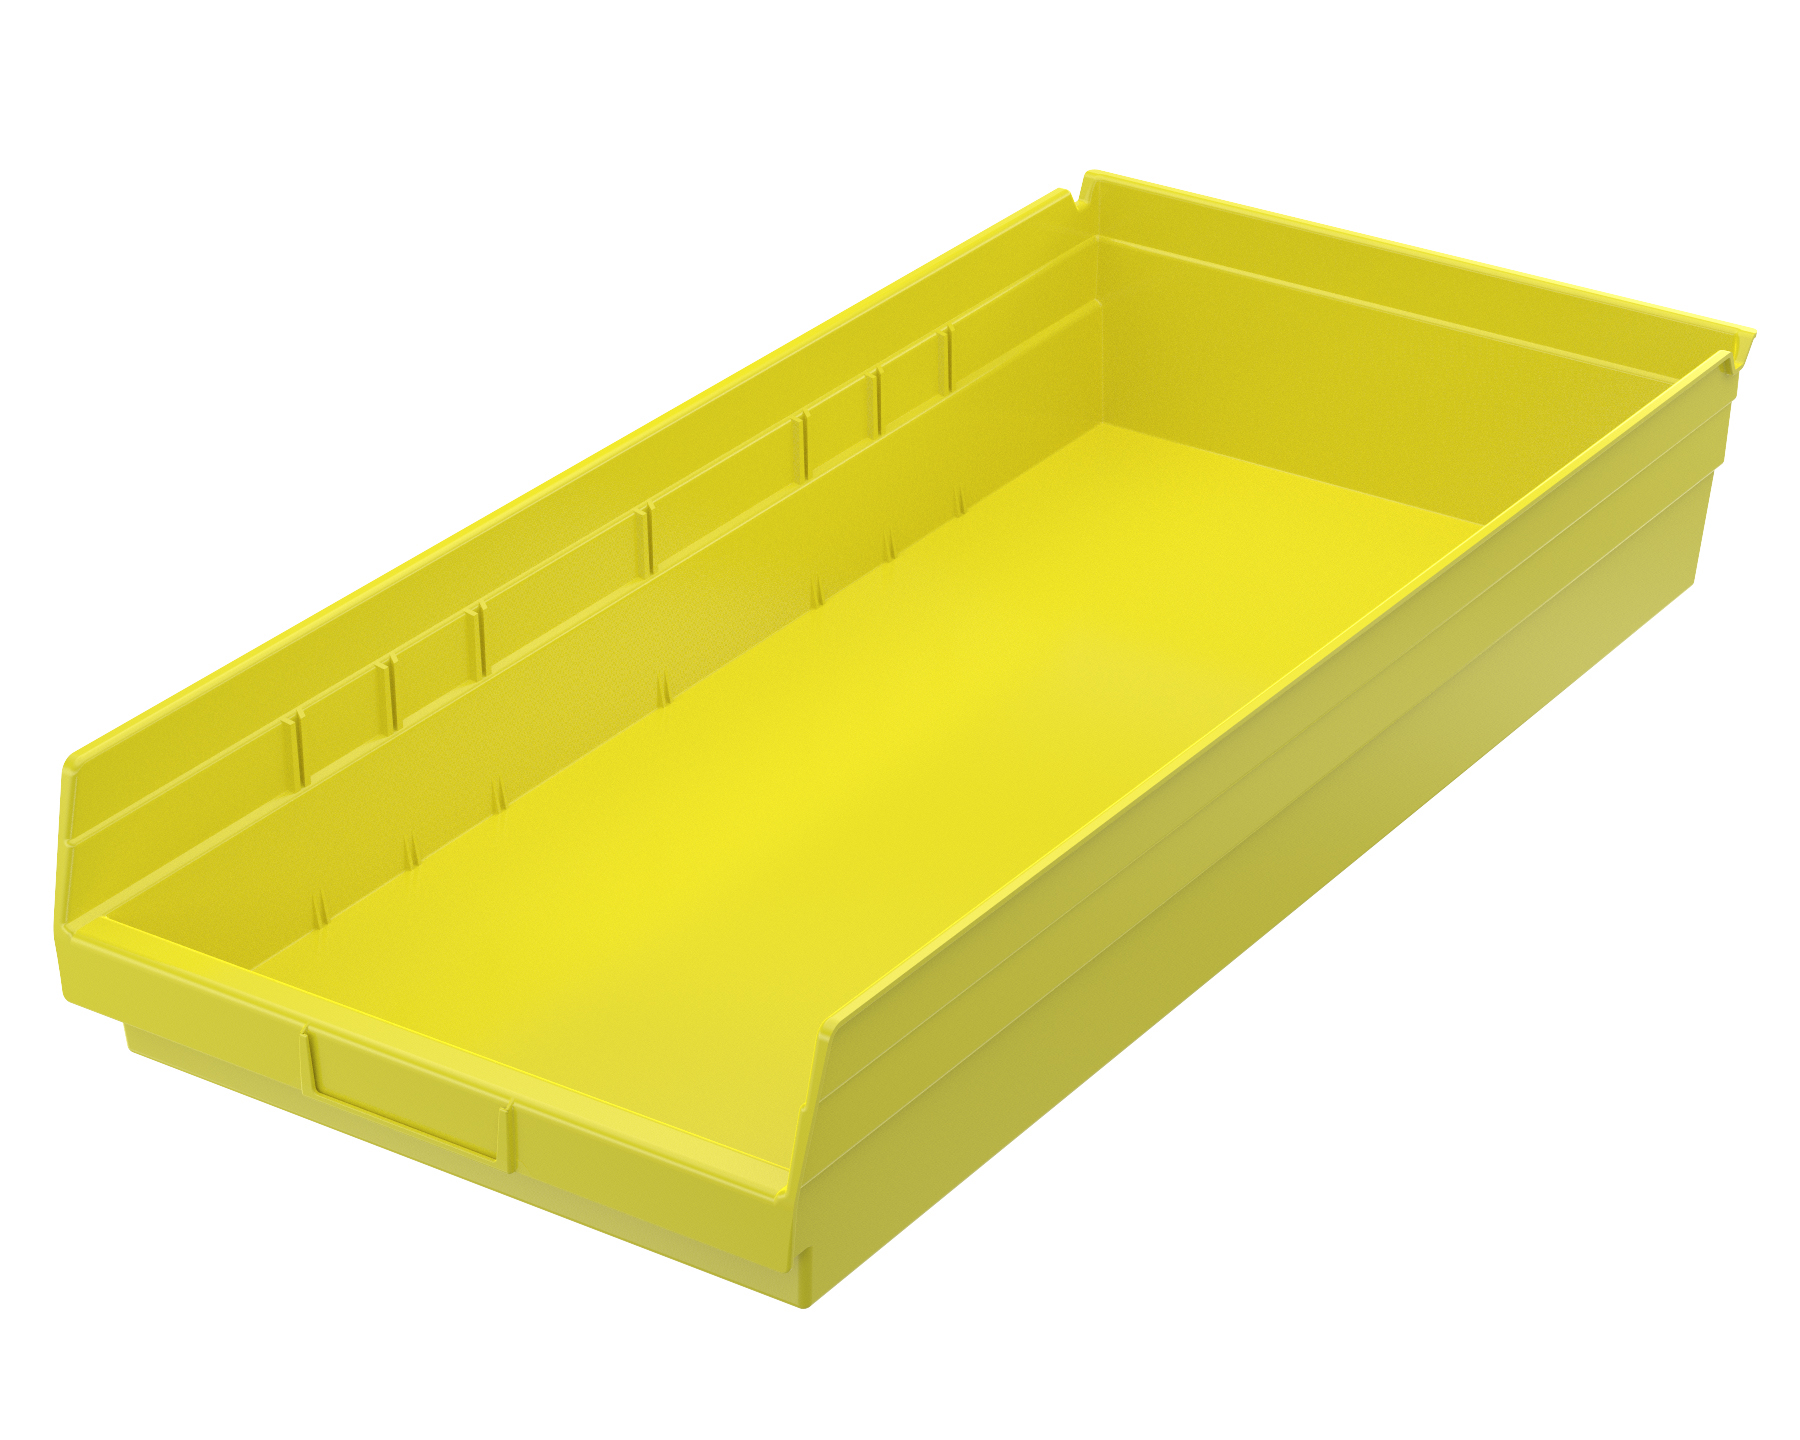 Shelf Bin 23-5/8 x 11-1/8 x 4, Yellow (30174YELLO).  This item sold in carton quantities of 6.